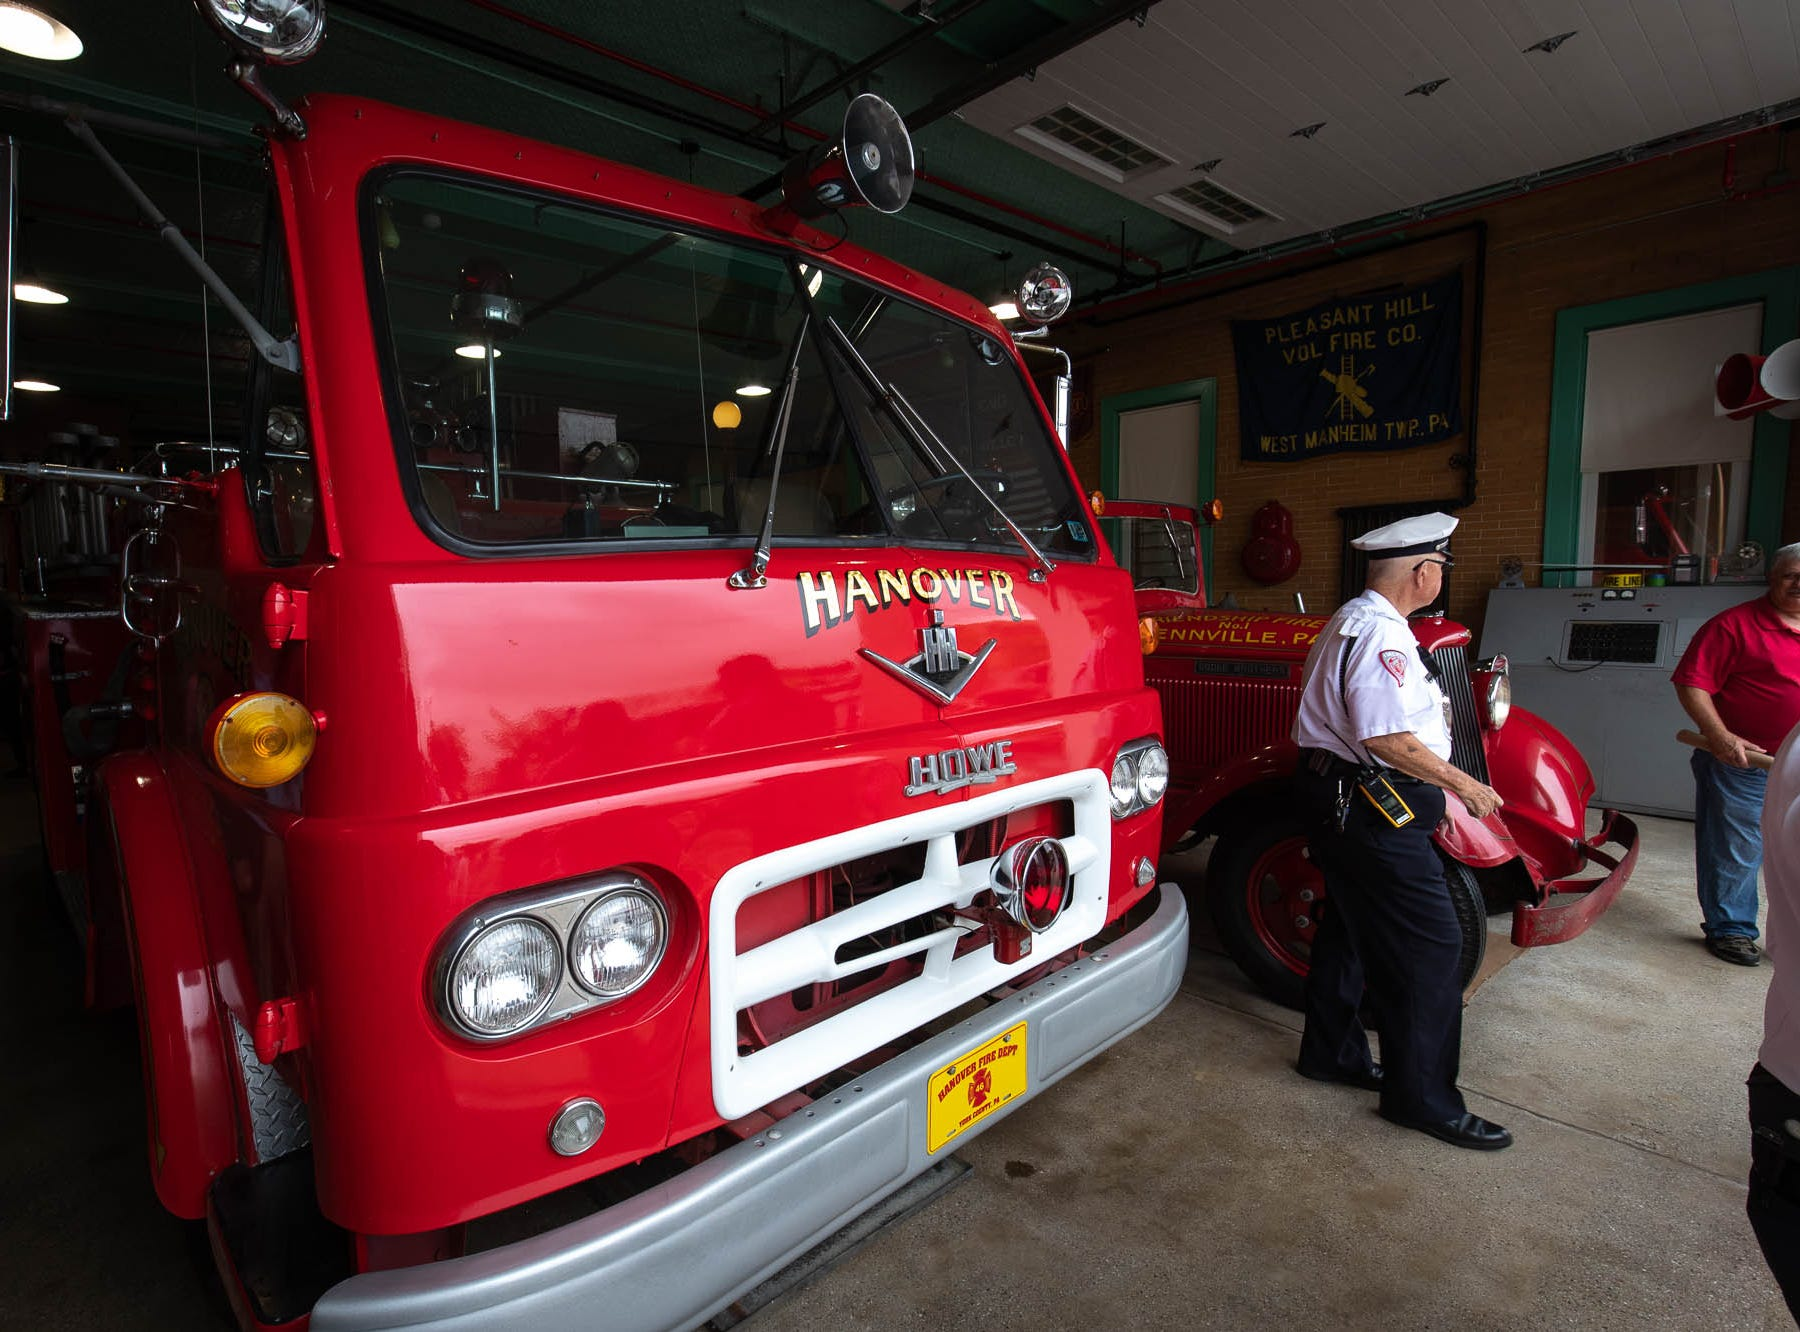 A 1961 Hanover fire department Howe fire engine is seen in the new Greater Hanover Area Fire Museum, Saturday, Sept. 1, 2018, in Hanover.